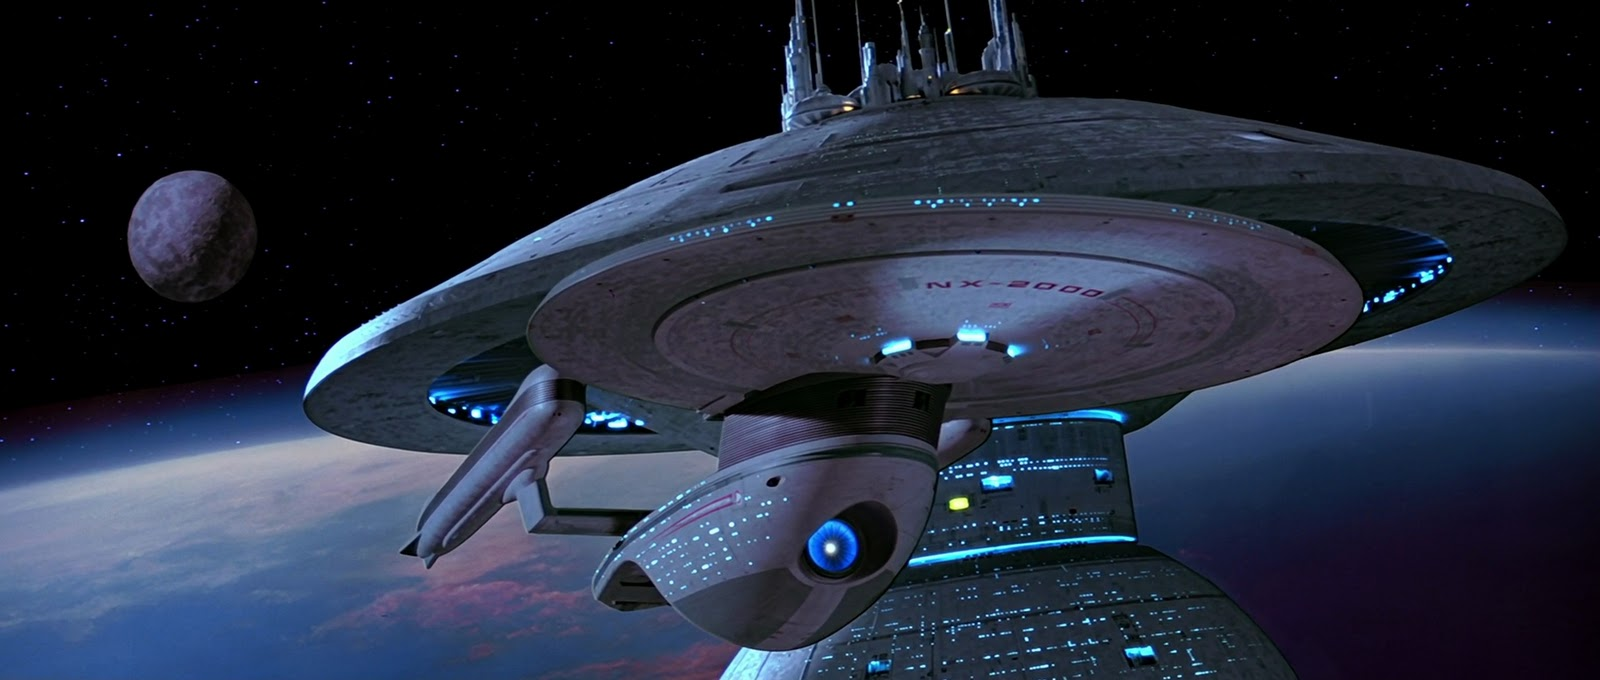 star trek future starship - photo #34